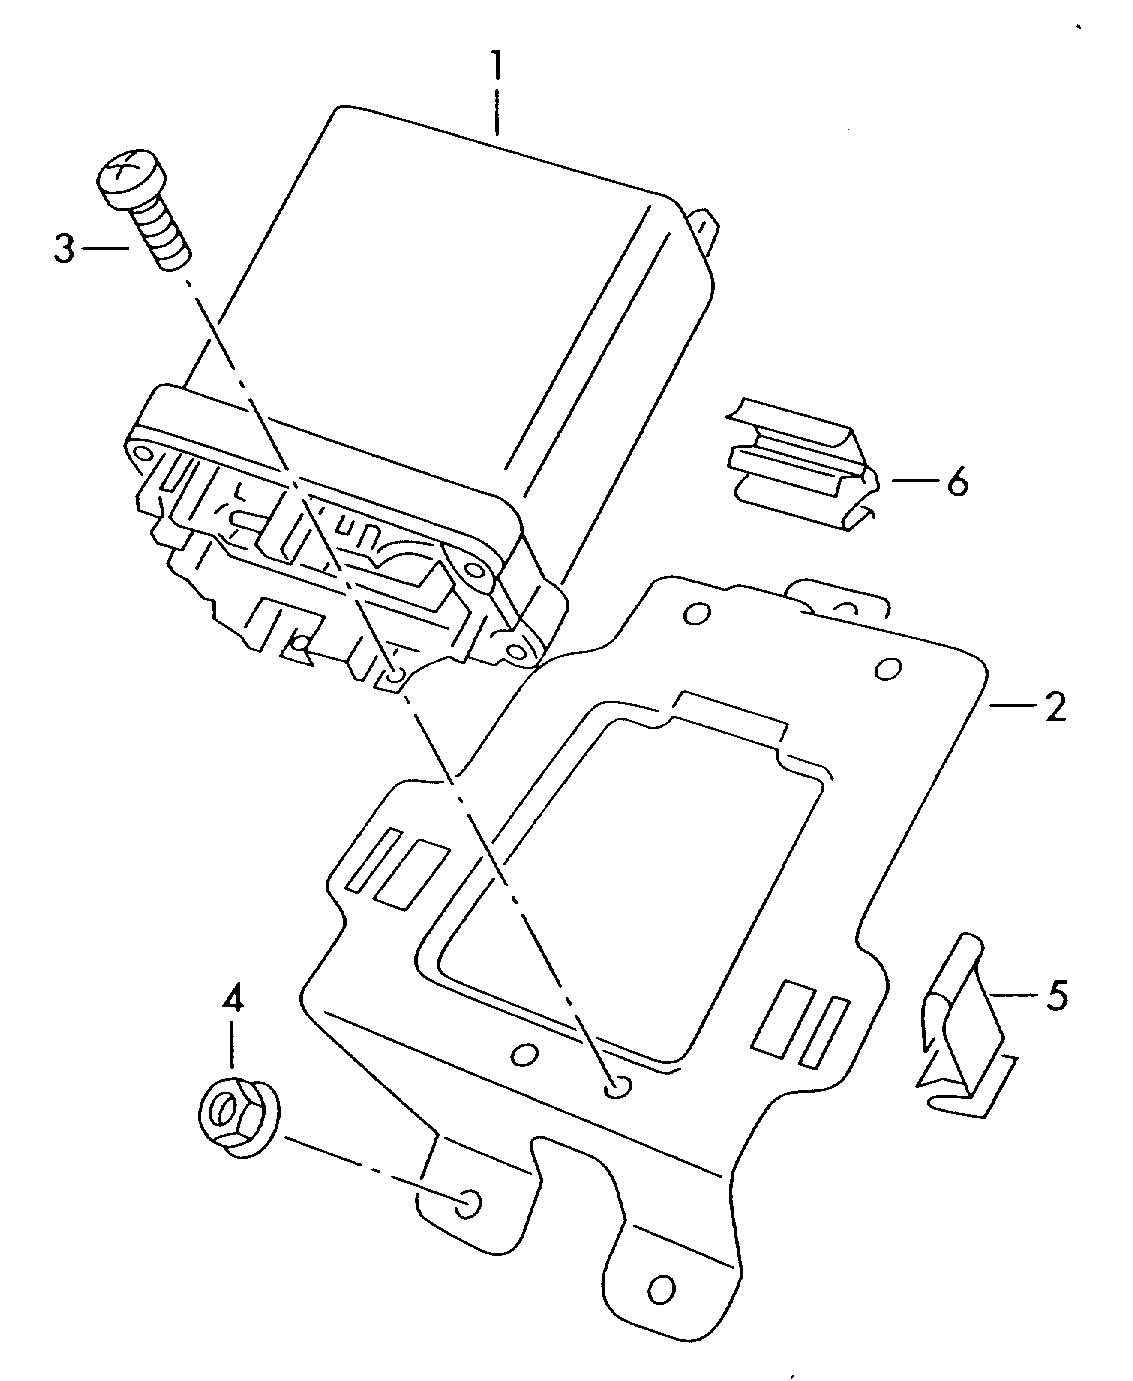 2009 Volkswagen Beetle Fuse Box Cover Auto Electrical Wiring Diagram Related With